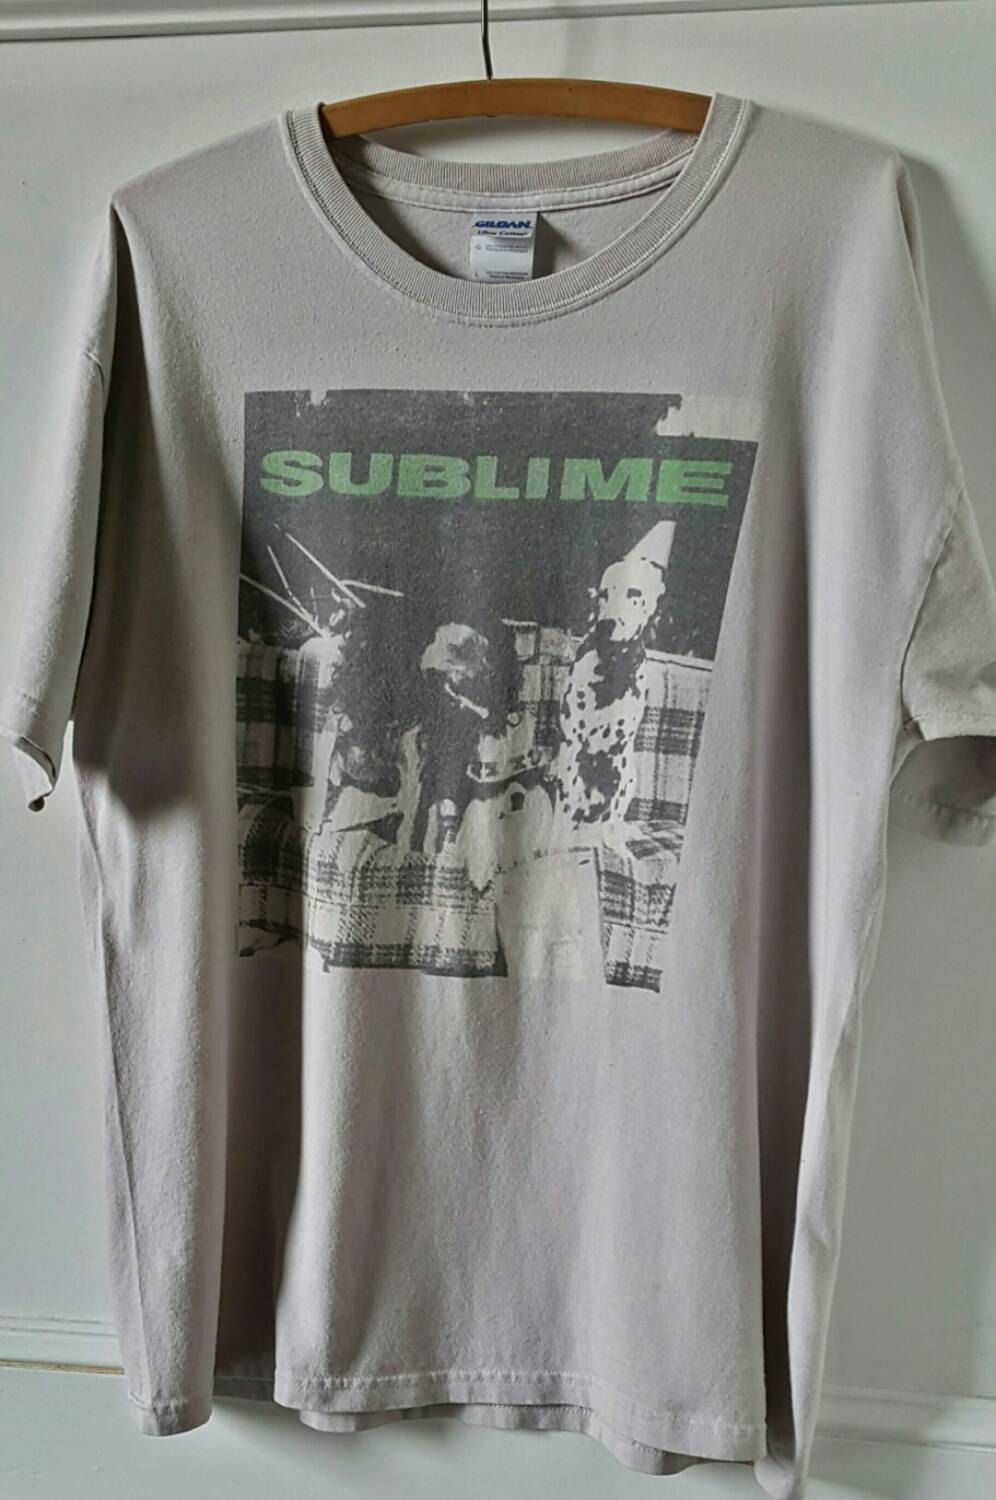 39ea4d28b7e8 Sublime, Sublime Shirt, Sublime Lou Dog T-shirt by ResouledGypsy on Etsy